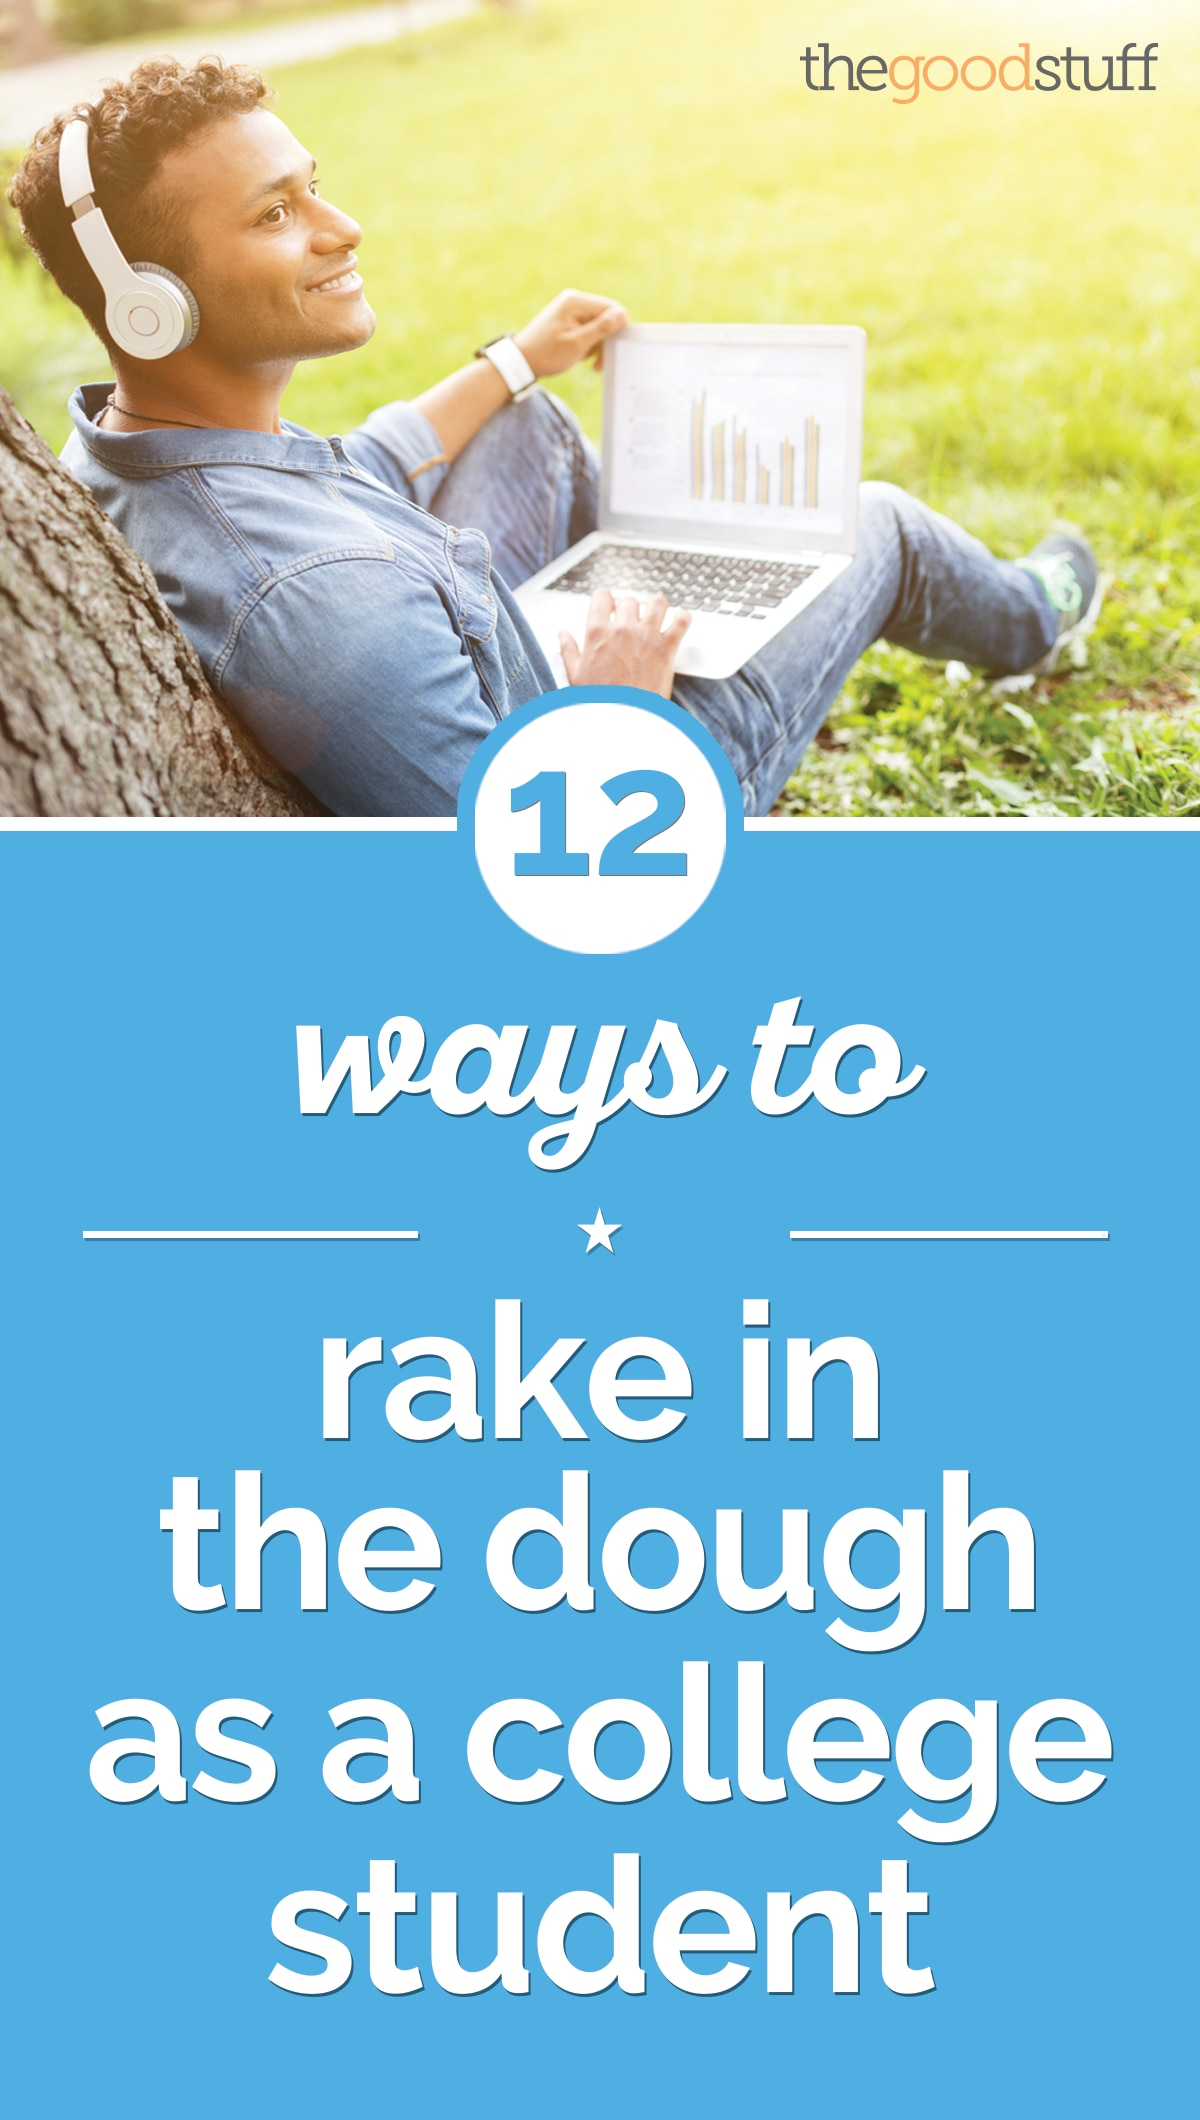 12 Ways to Rake in the Dough as College Student | thegoodstuff